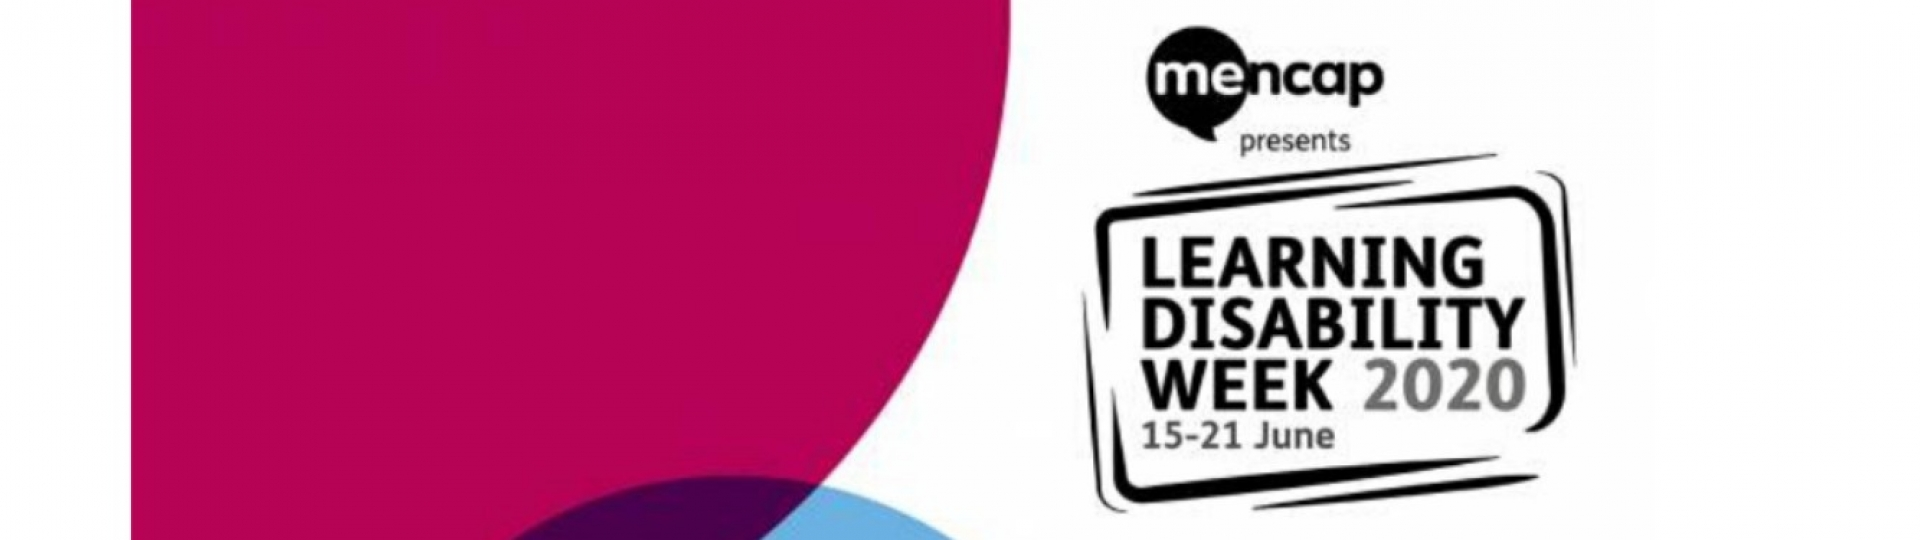 learning disability week logo